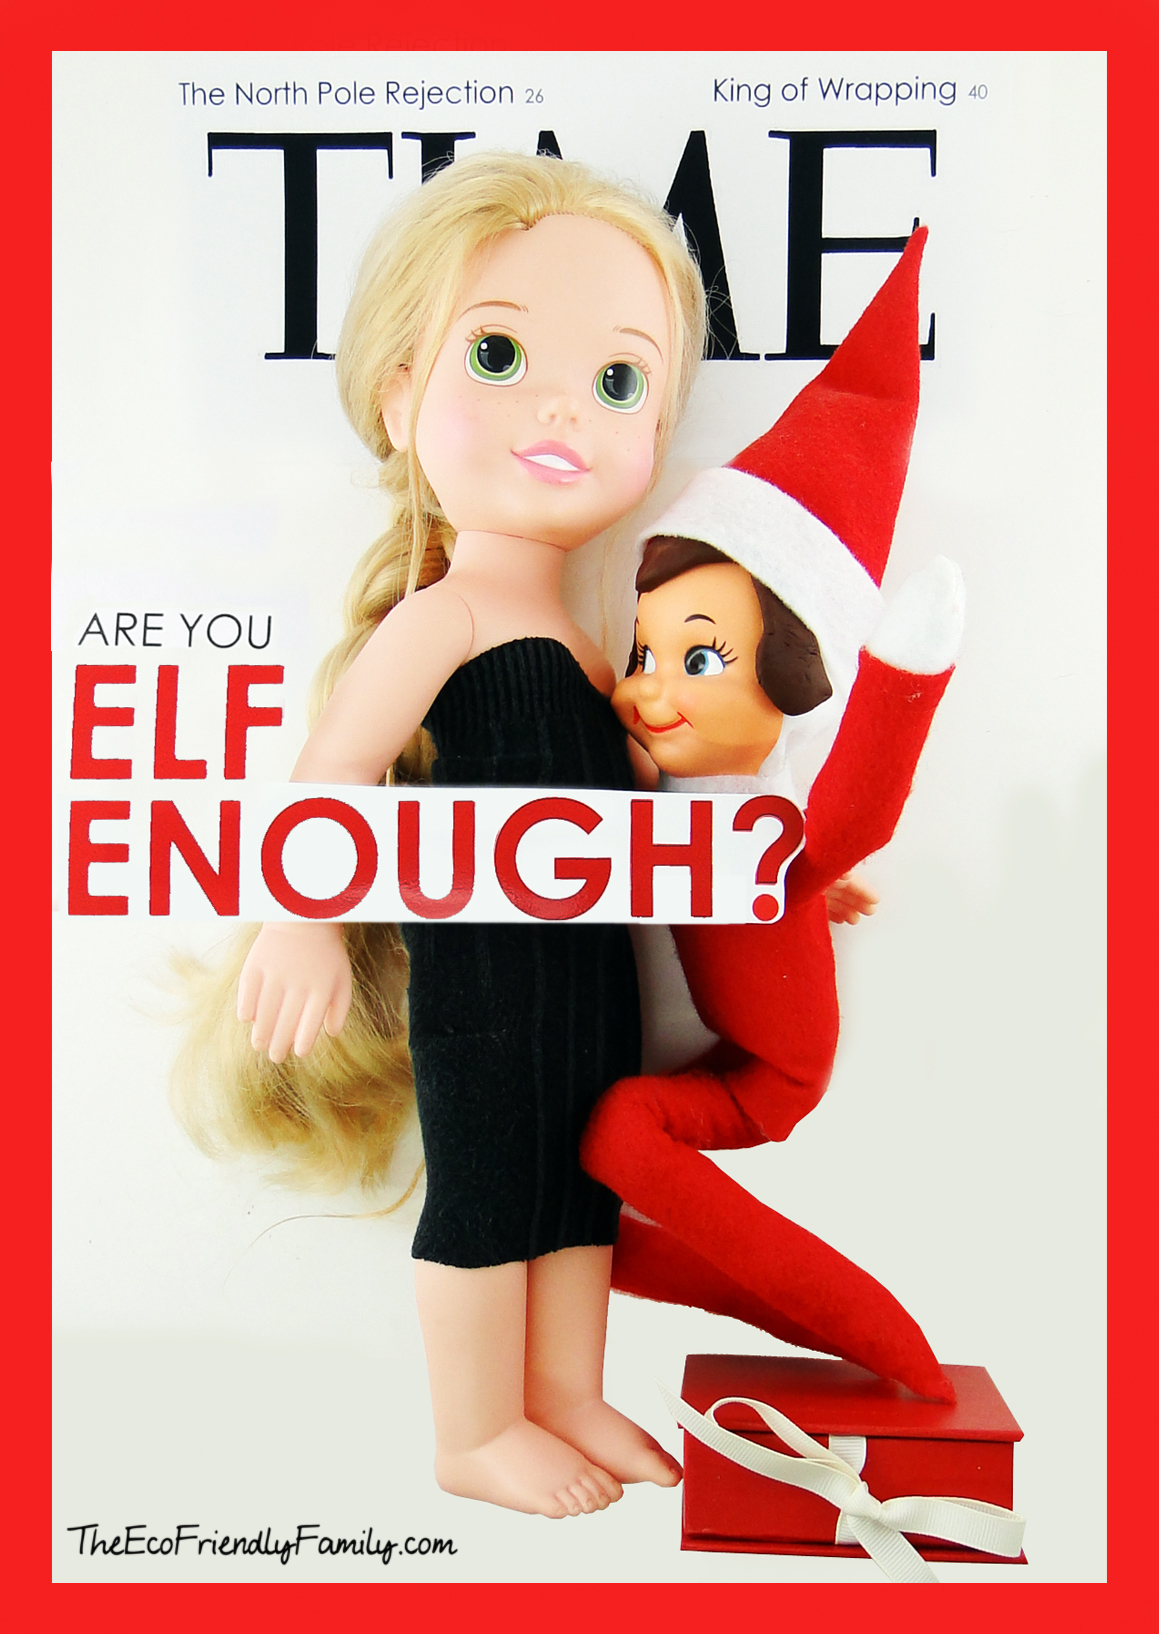 Are You ELF ENOUGH? #InappropriateElf